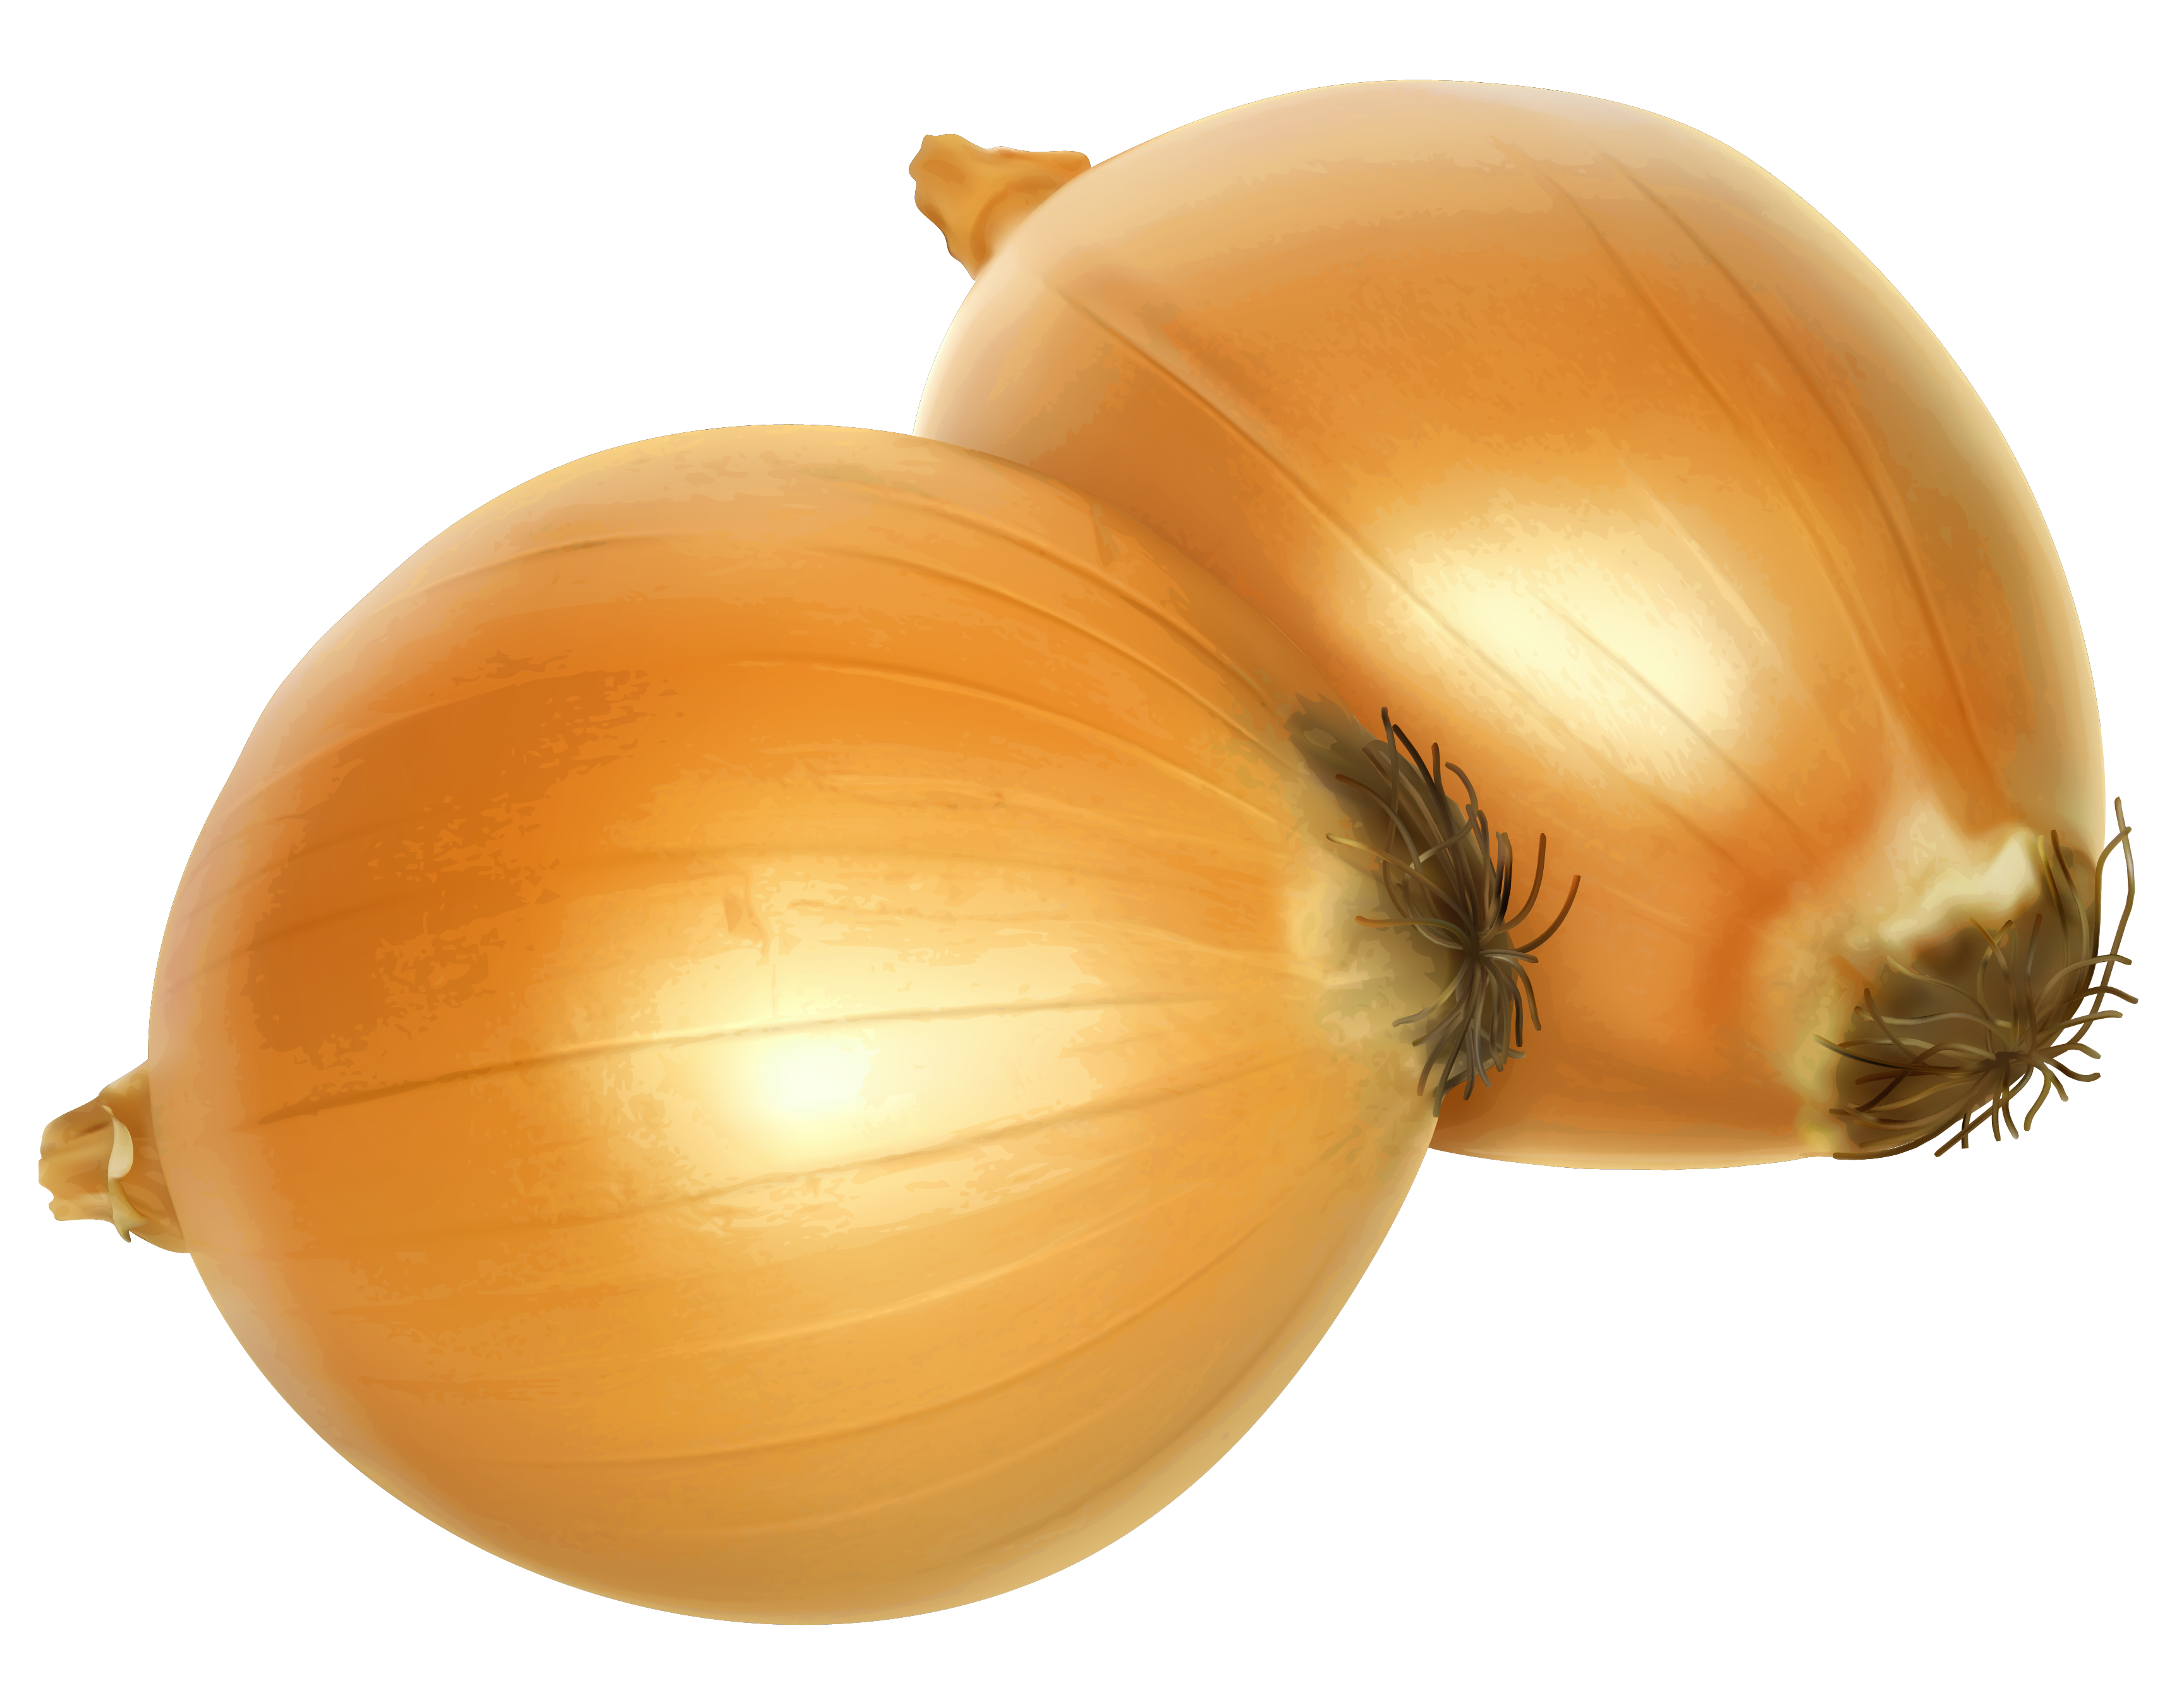 Onion clipart onoin. Png gallery yopriceville high